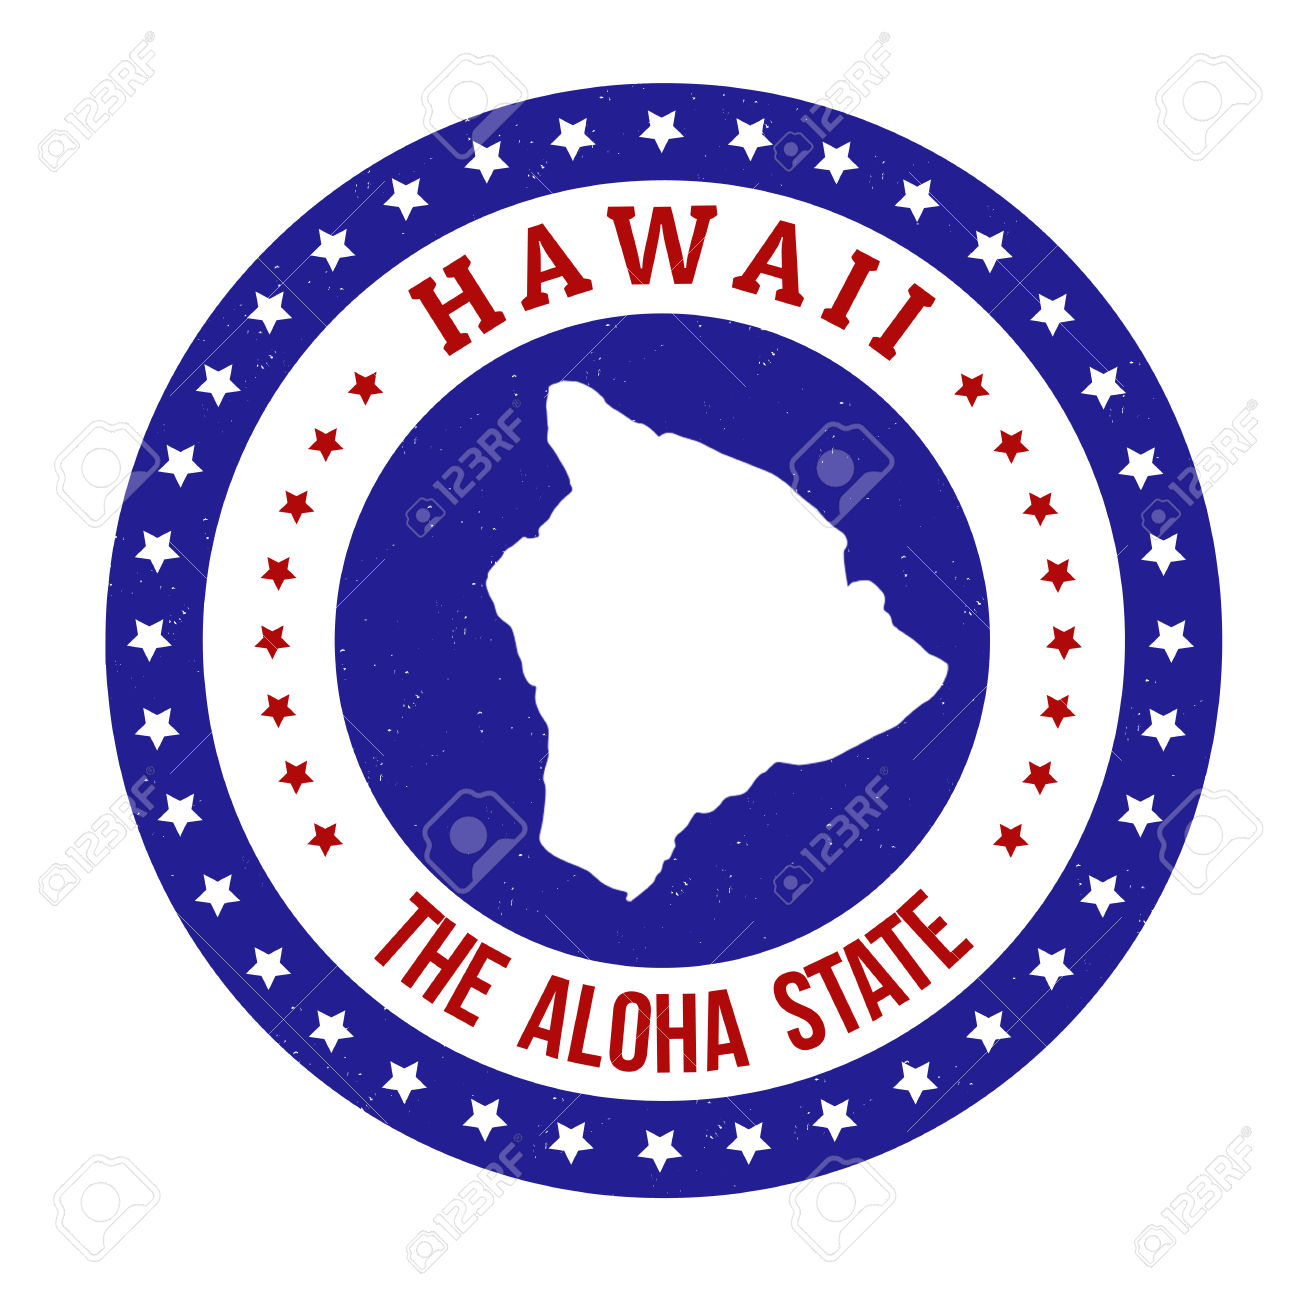 Vintage Stamp With Text The Aloha State Written Inside And Map.